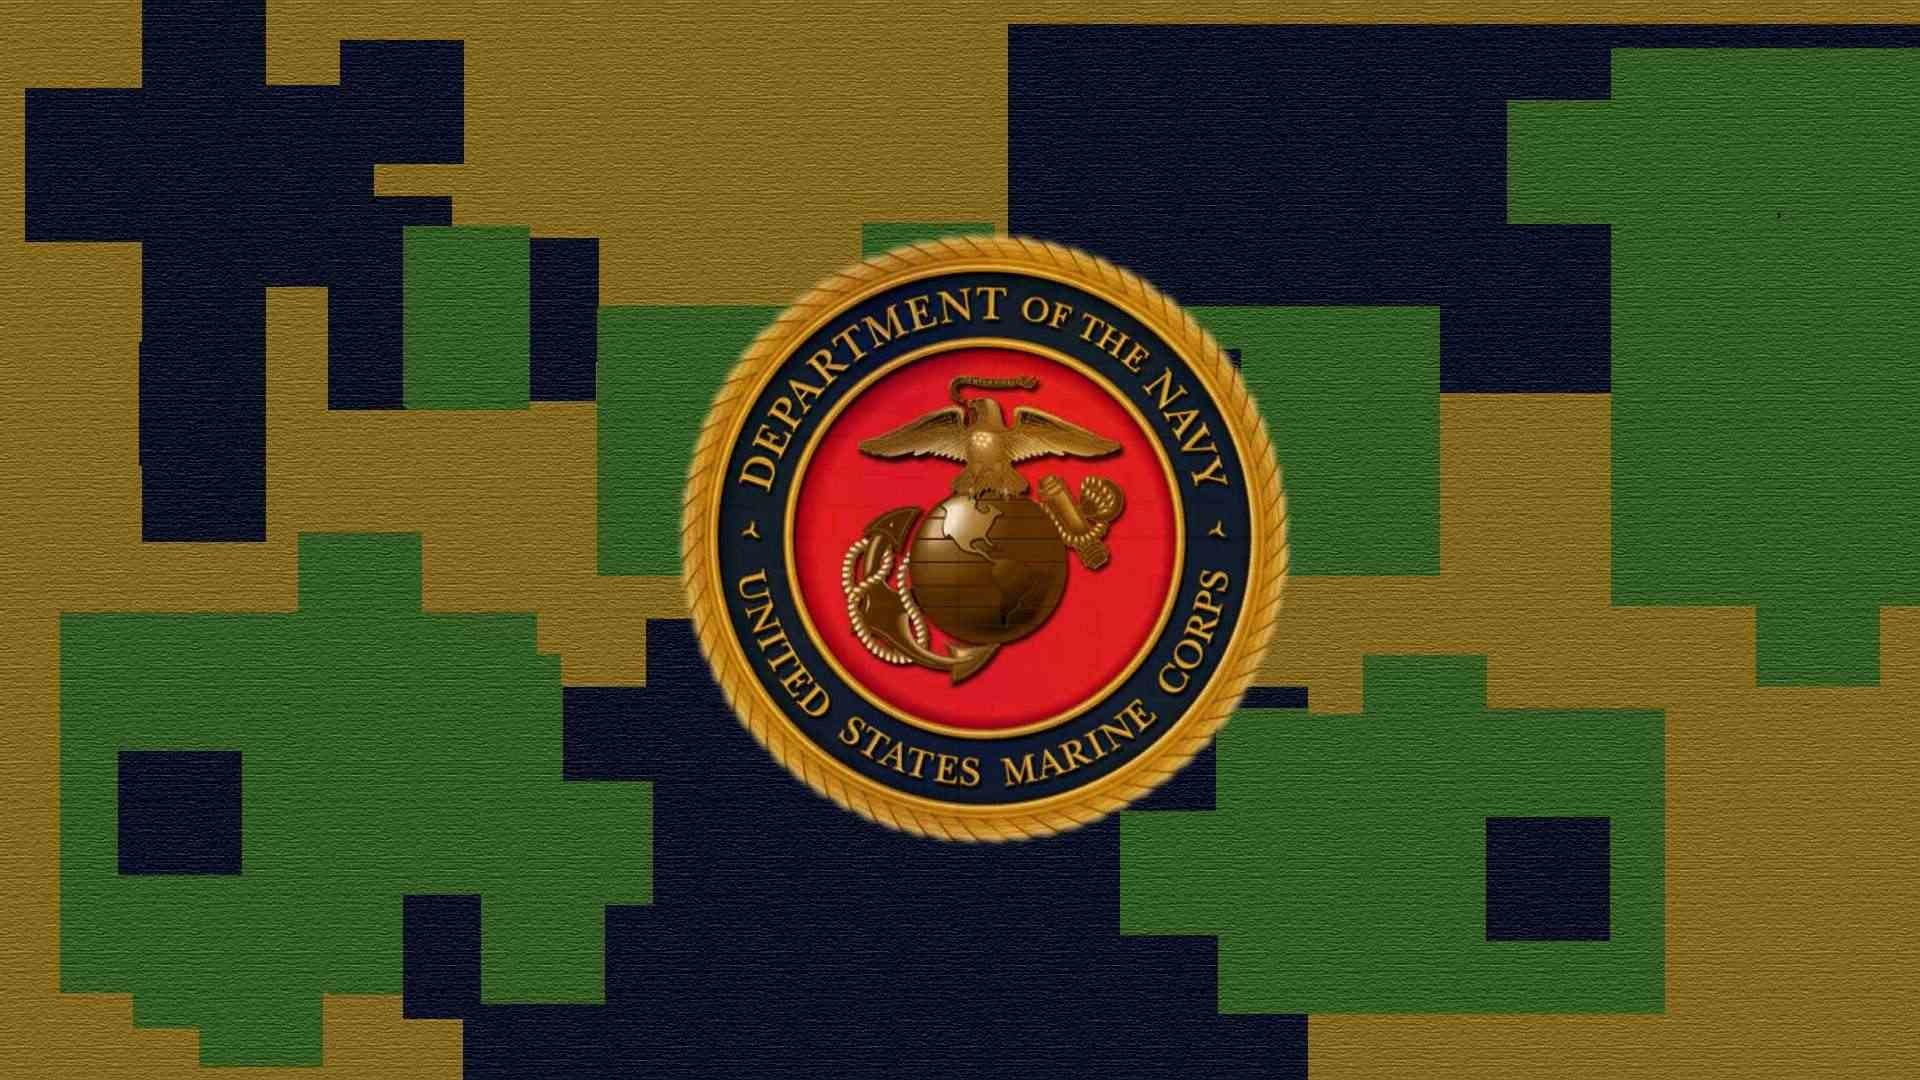 Pictures united states marine corps iphone wallpapers iphone themes .